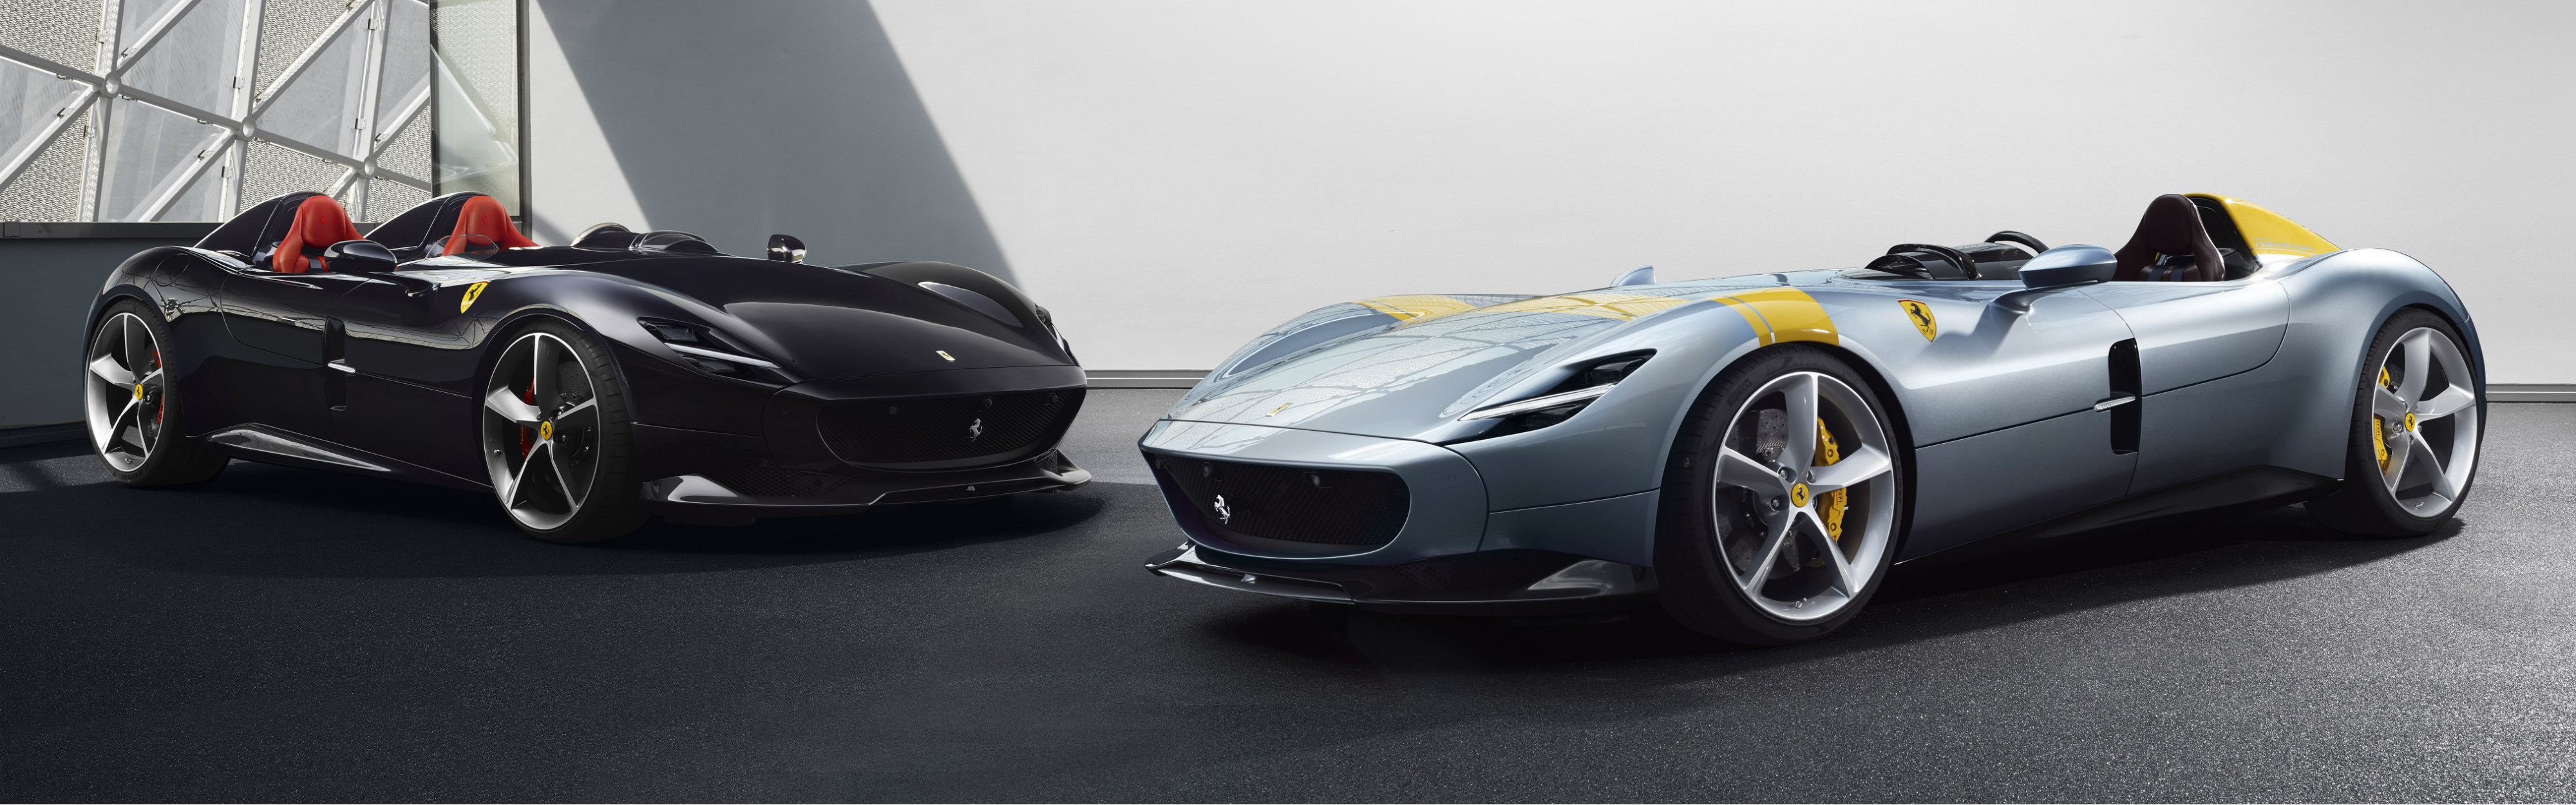 The Monza SP1 and Monza SP2 are the first models in Ferrari's new limited-edition special series called 'Icone', which features iconic cars whose sophisticated design and engineering are inspired by legendary Ferrari sports racers of the past.